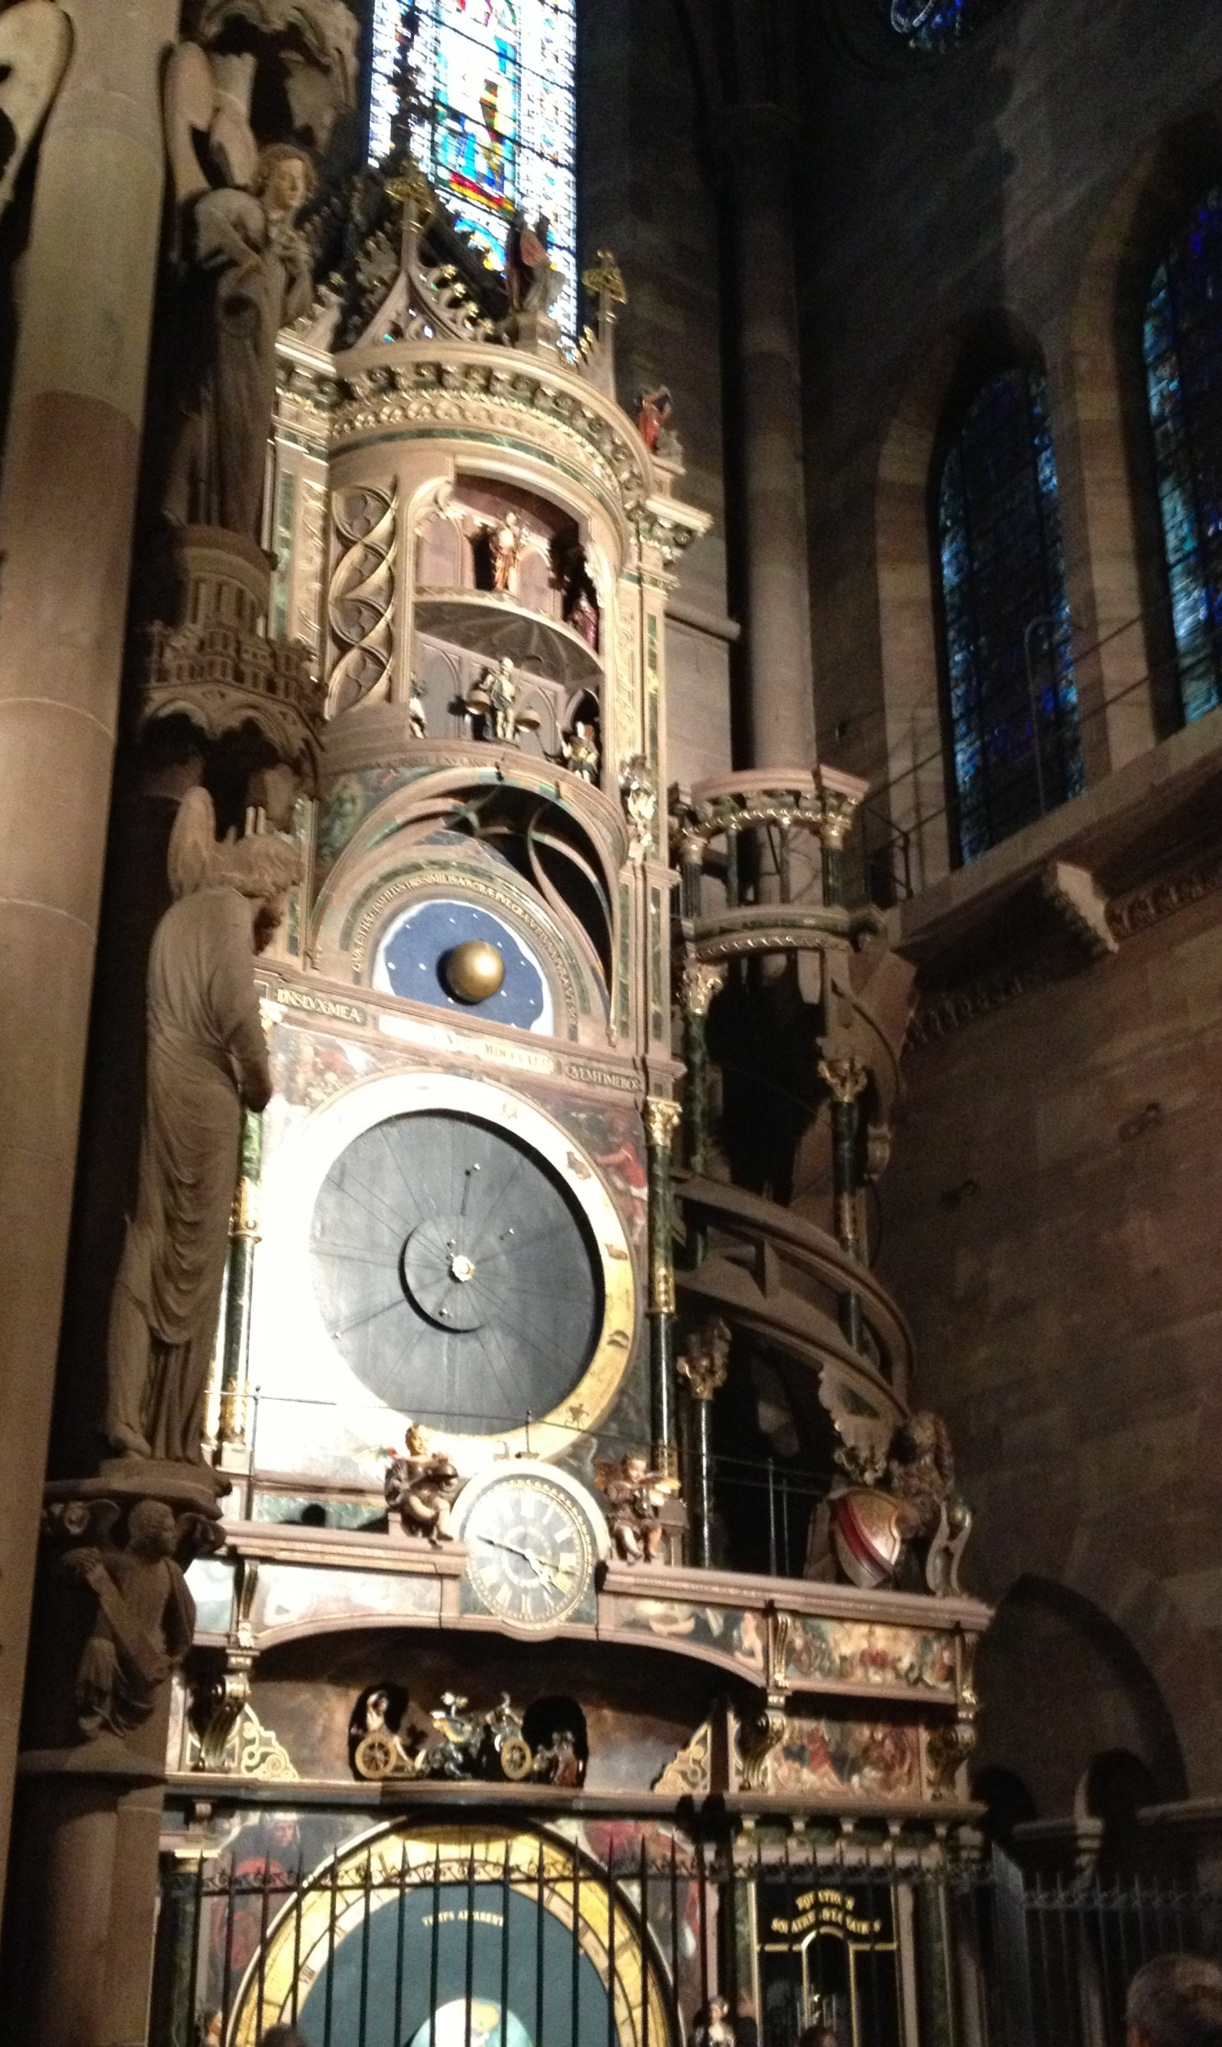 2CathedralClock copy